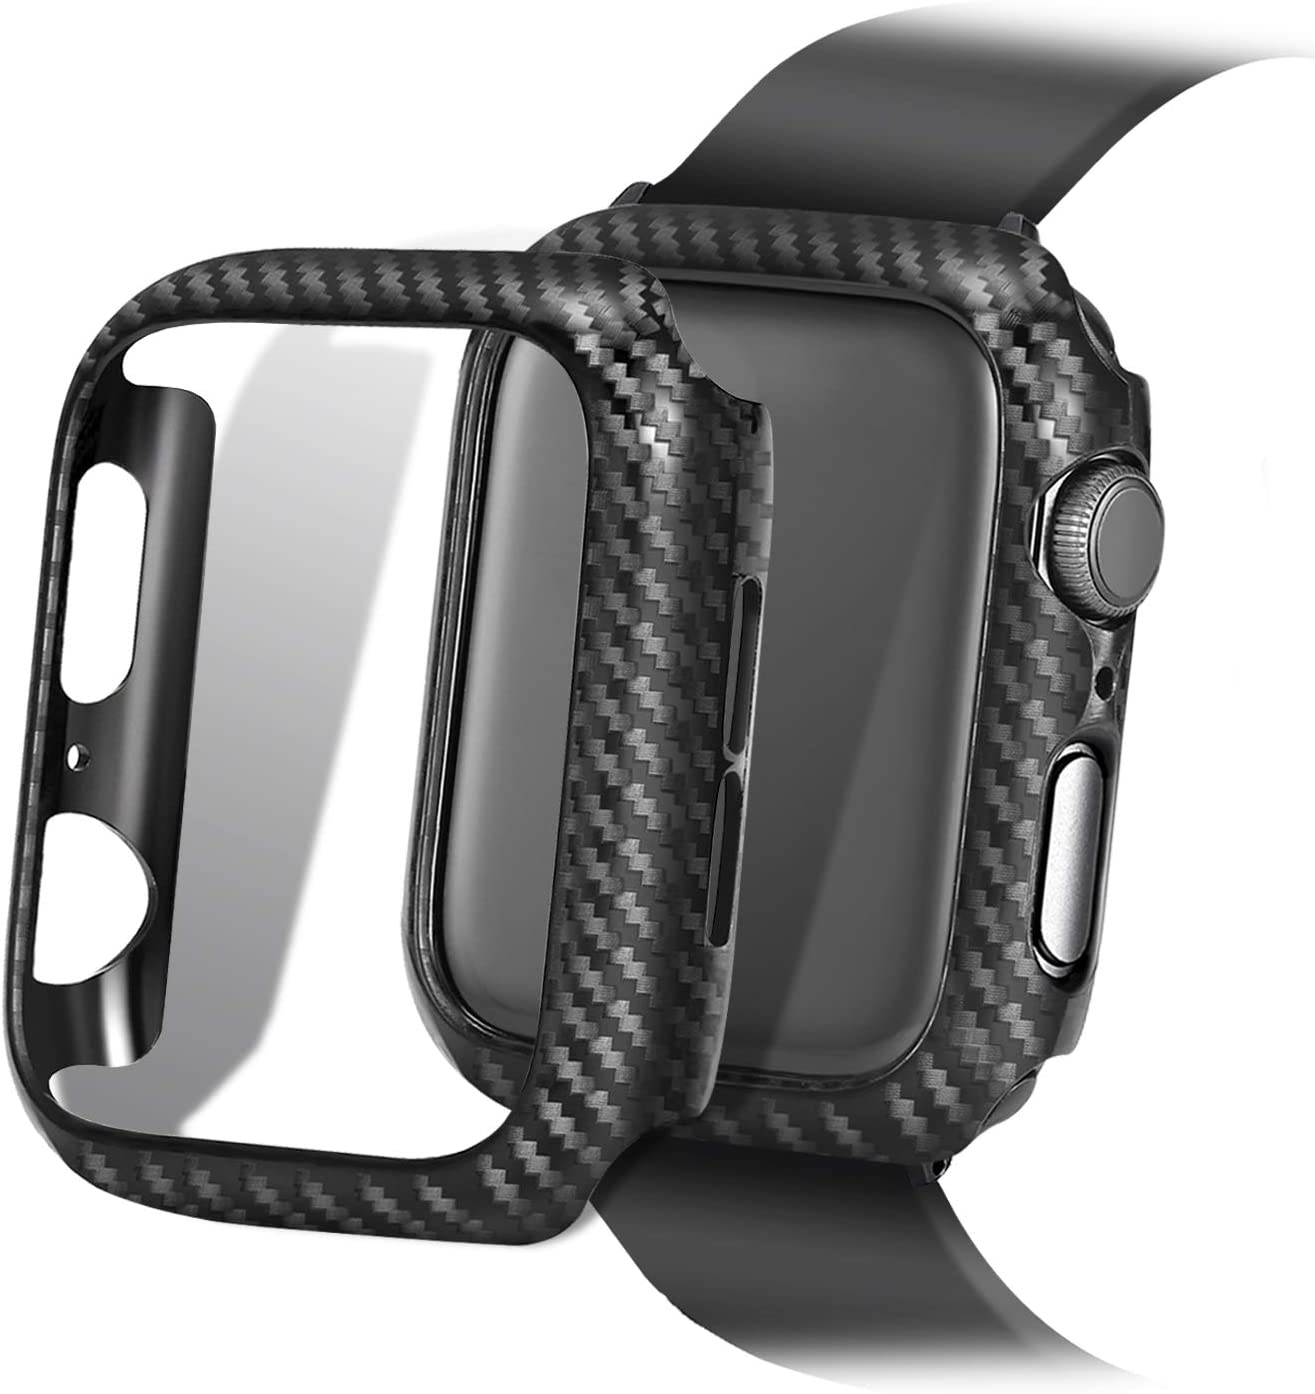 Compatible with Apple Watch SE Series 6 5 4 44mm 40mm Case Super Thin PC Plating Protective Bumper Scratch Resistant Protector Case for Apple Watch 44mm 40mm (Carbon brazing, 40mm)